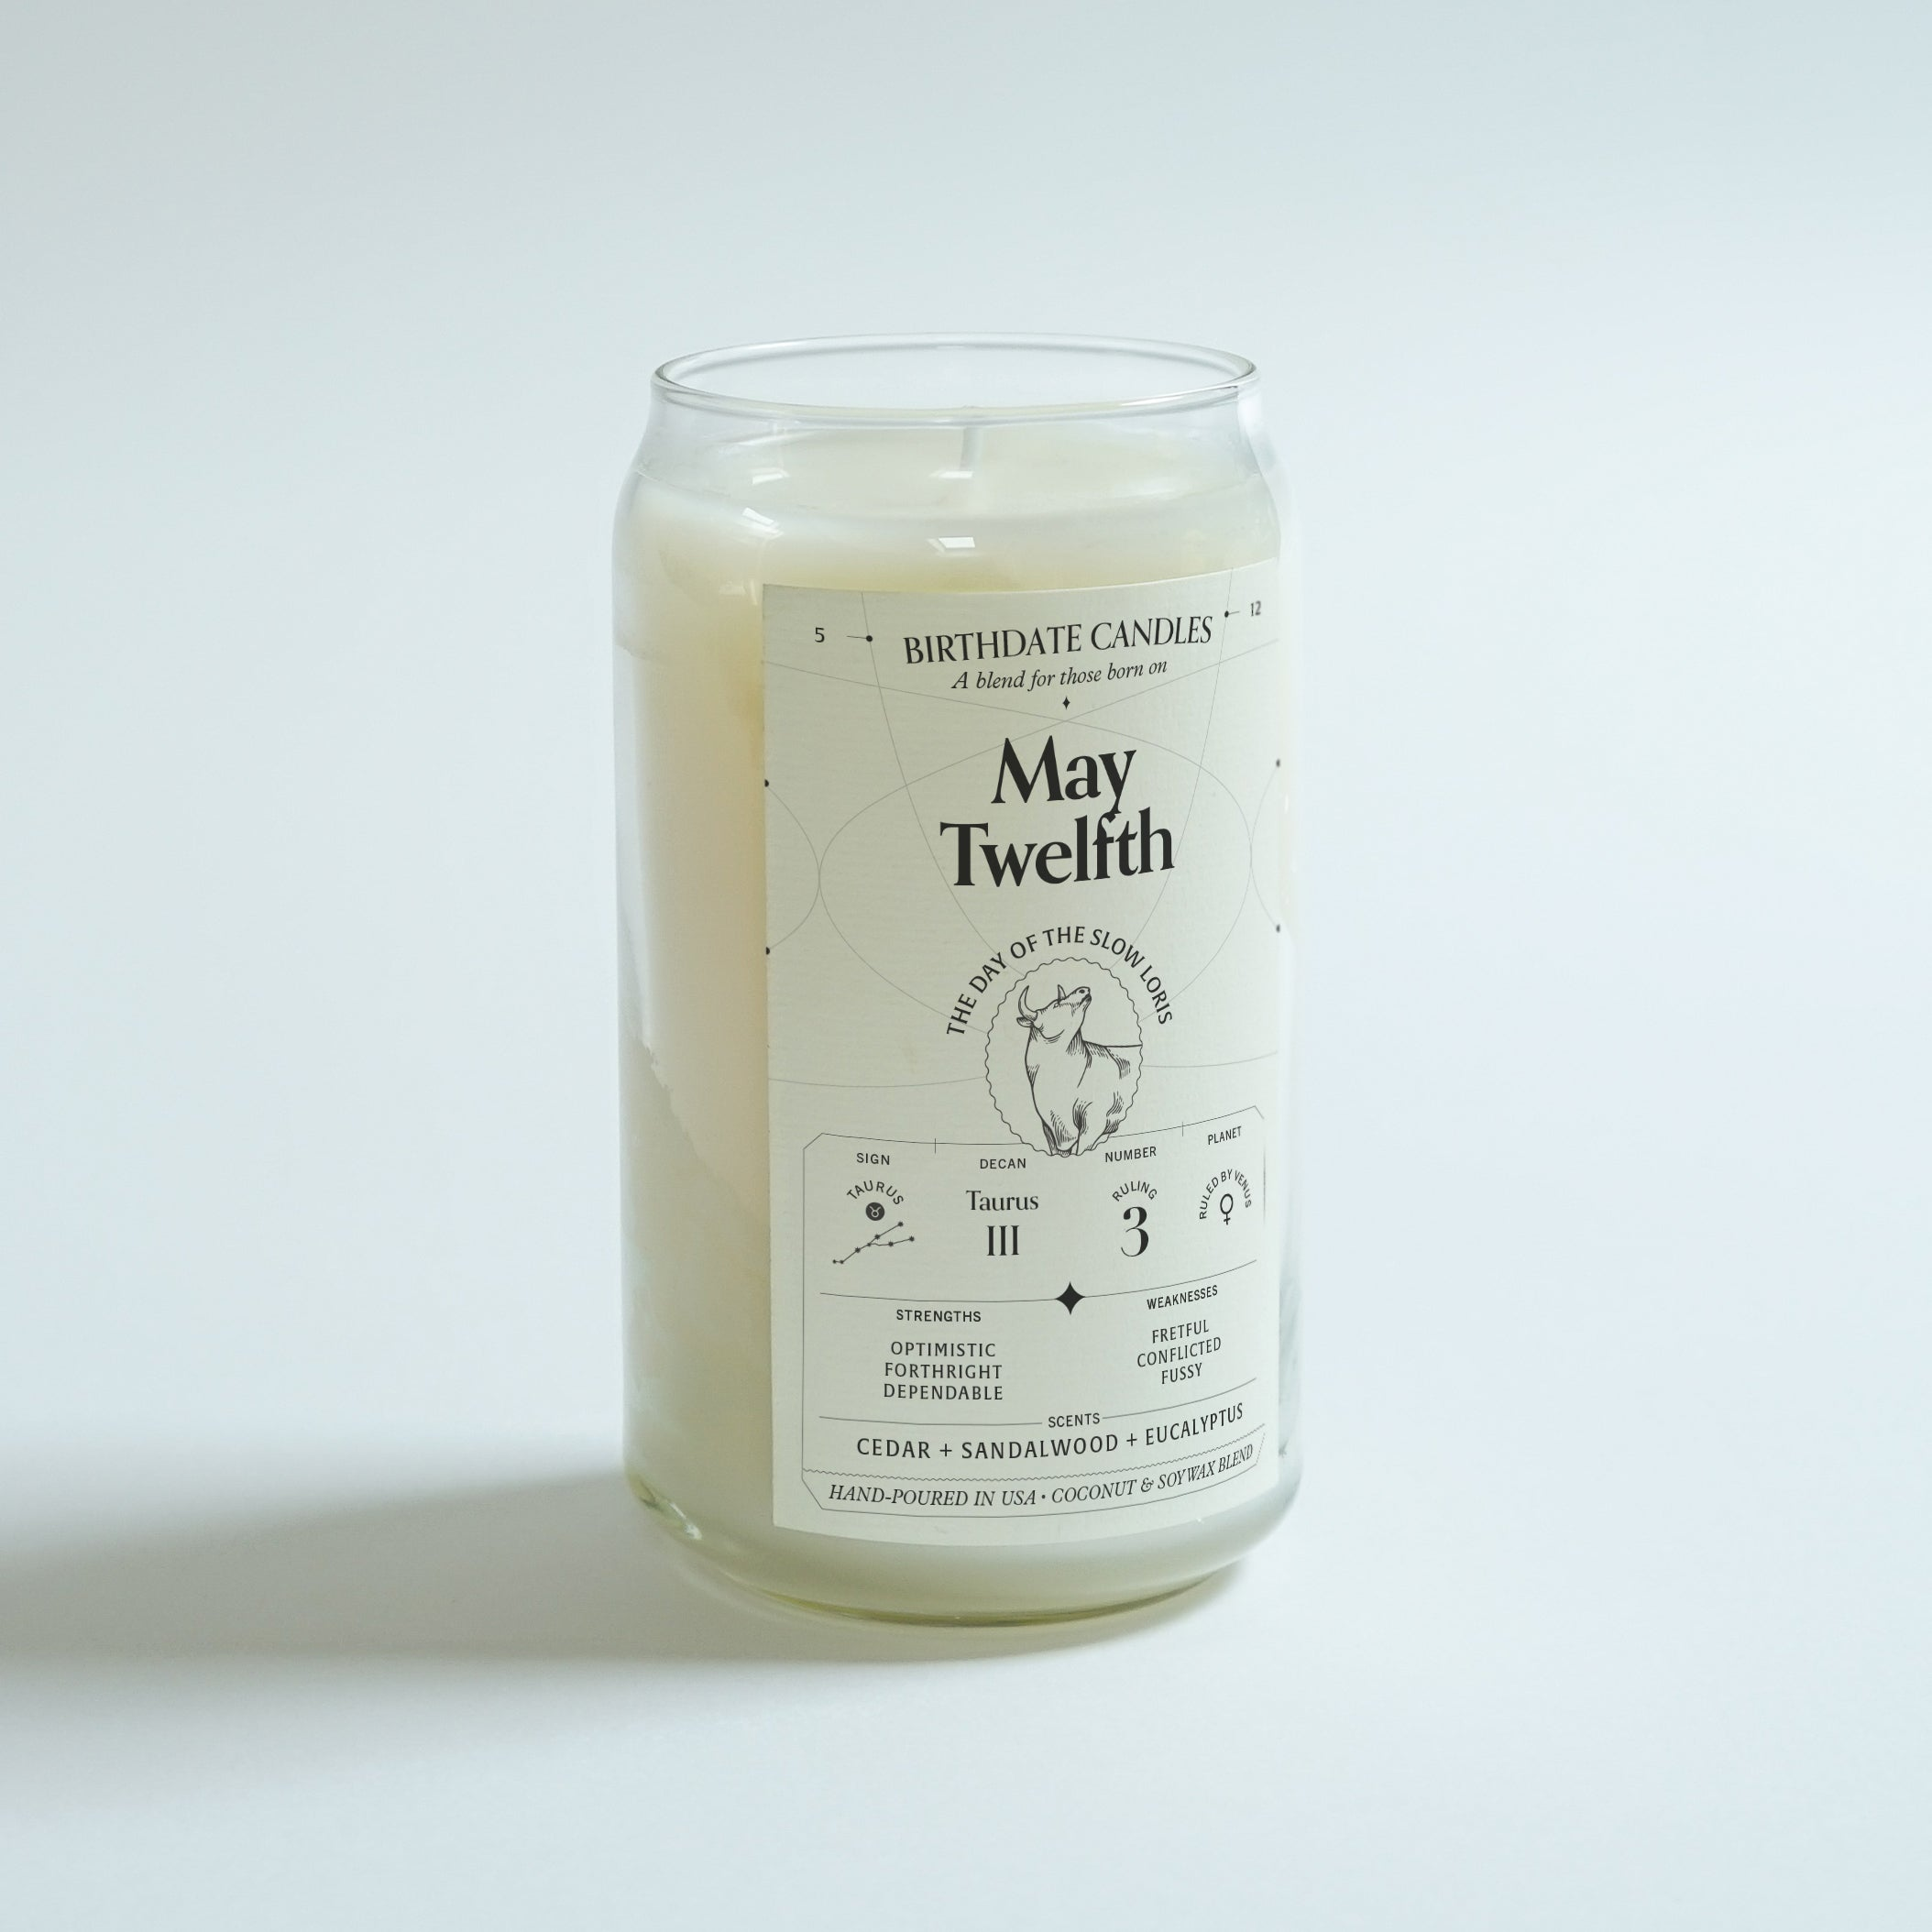 The May Twelfth Candle